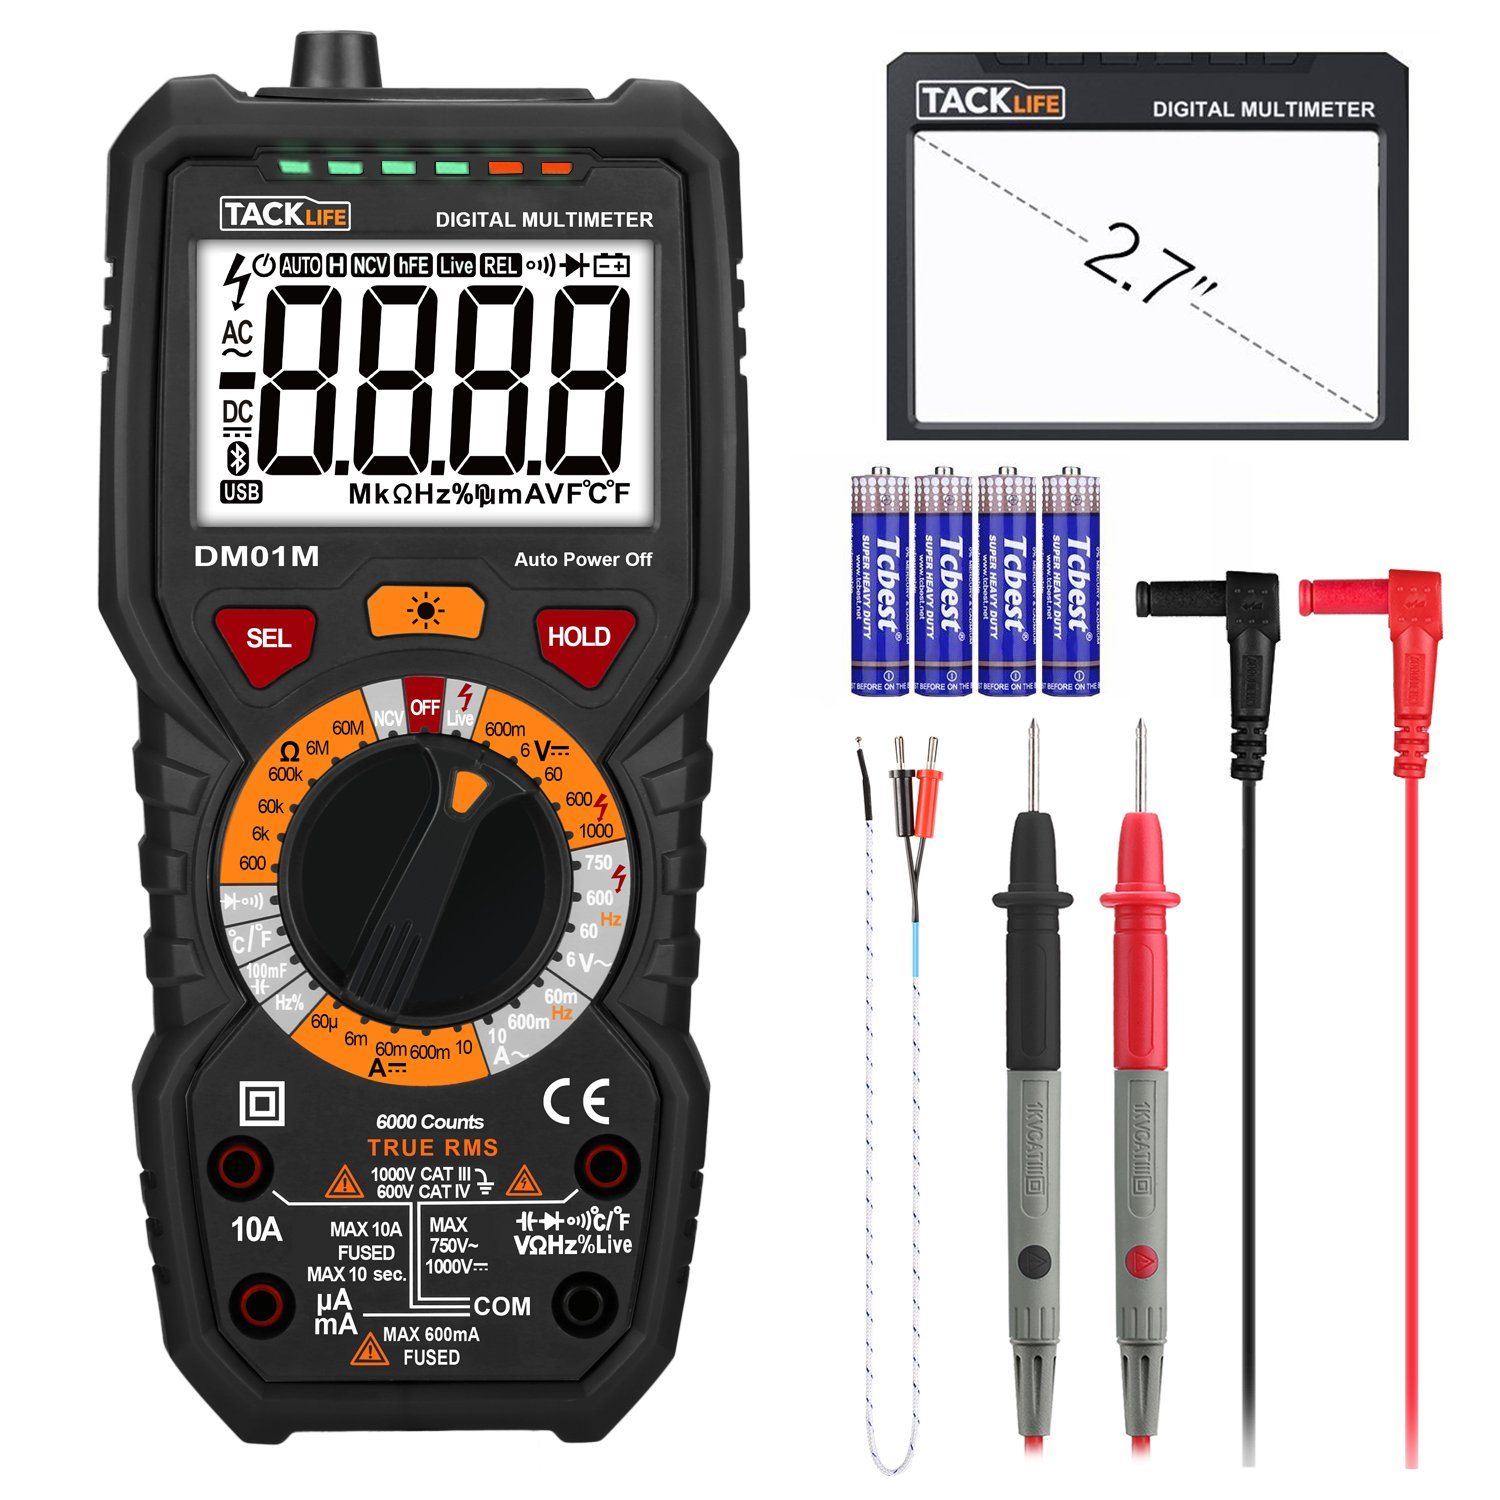 Tacklife DM01M Digital Multimeter TRMS 6000 Counts Manual Ranging, Volt Amp Ohm Multi Meter, Continuity Frequency Capacitance Diode Temperature Tester with NCV, LCD Backlit and Flashlight by TACKLIFE